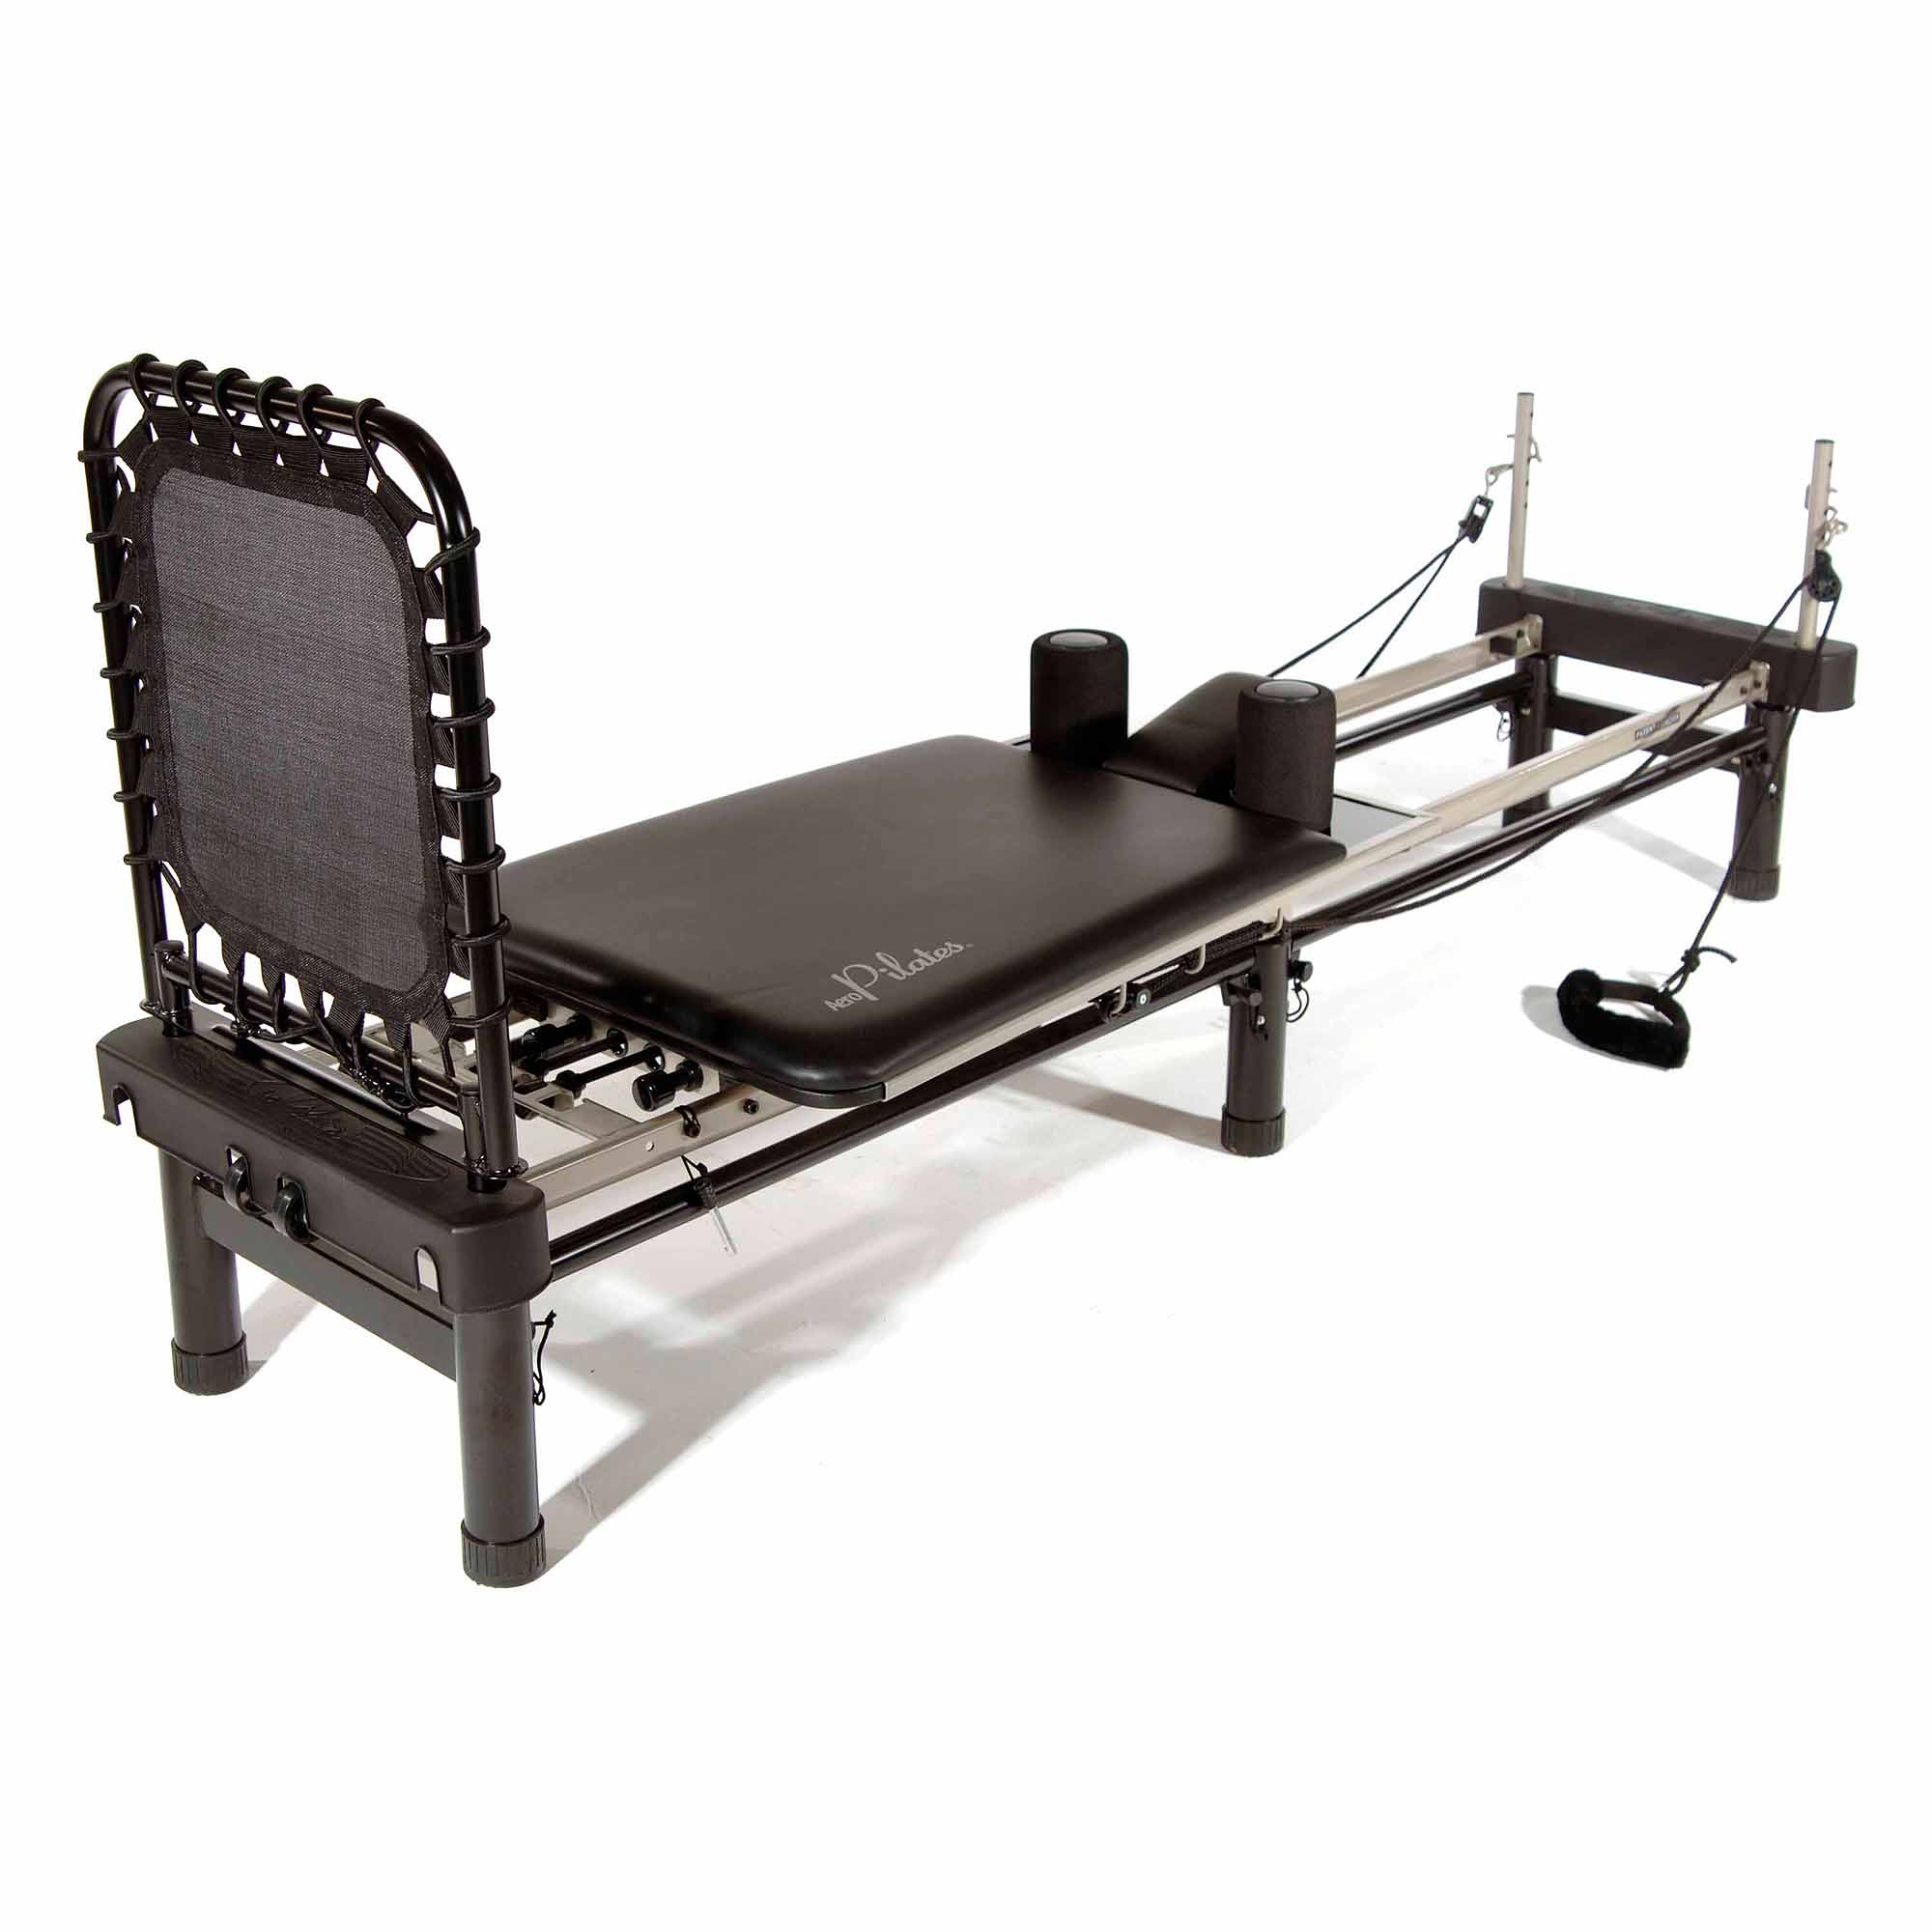 Stamina AeroPilates Premier with Stand, Cardio Rebounder, Neck Pillow and DVDs